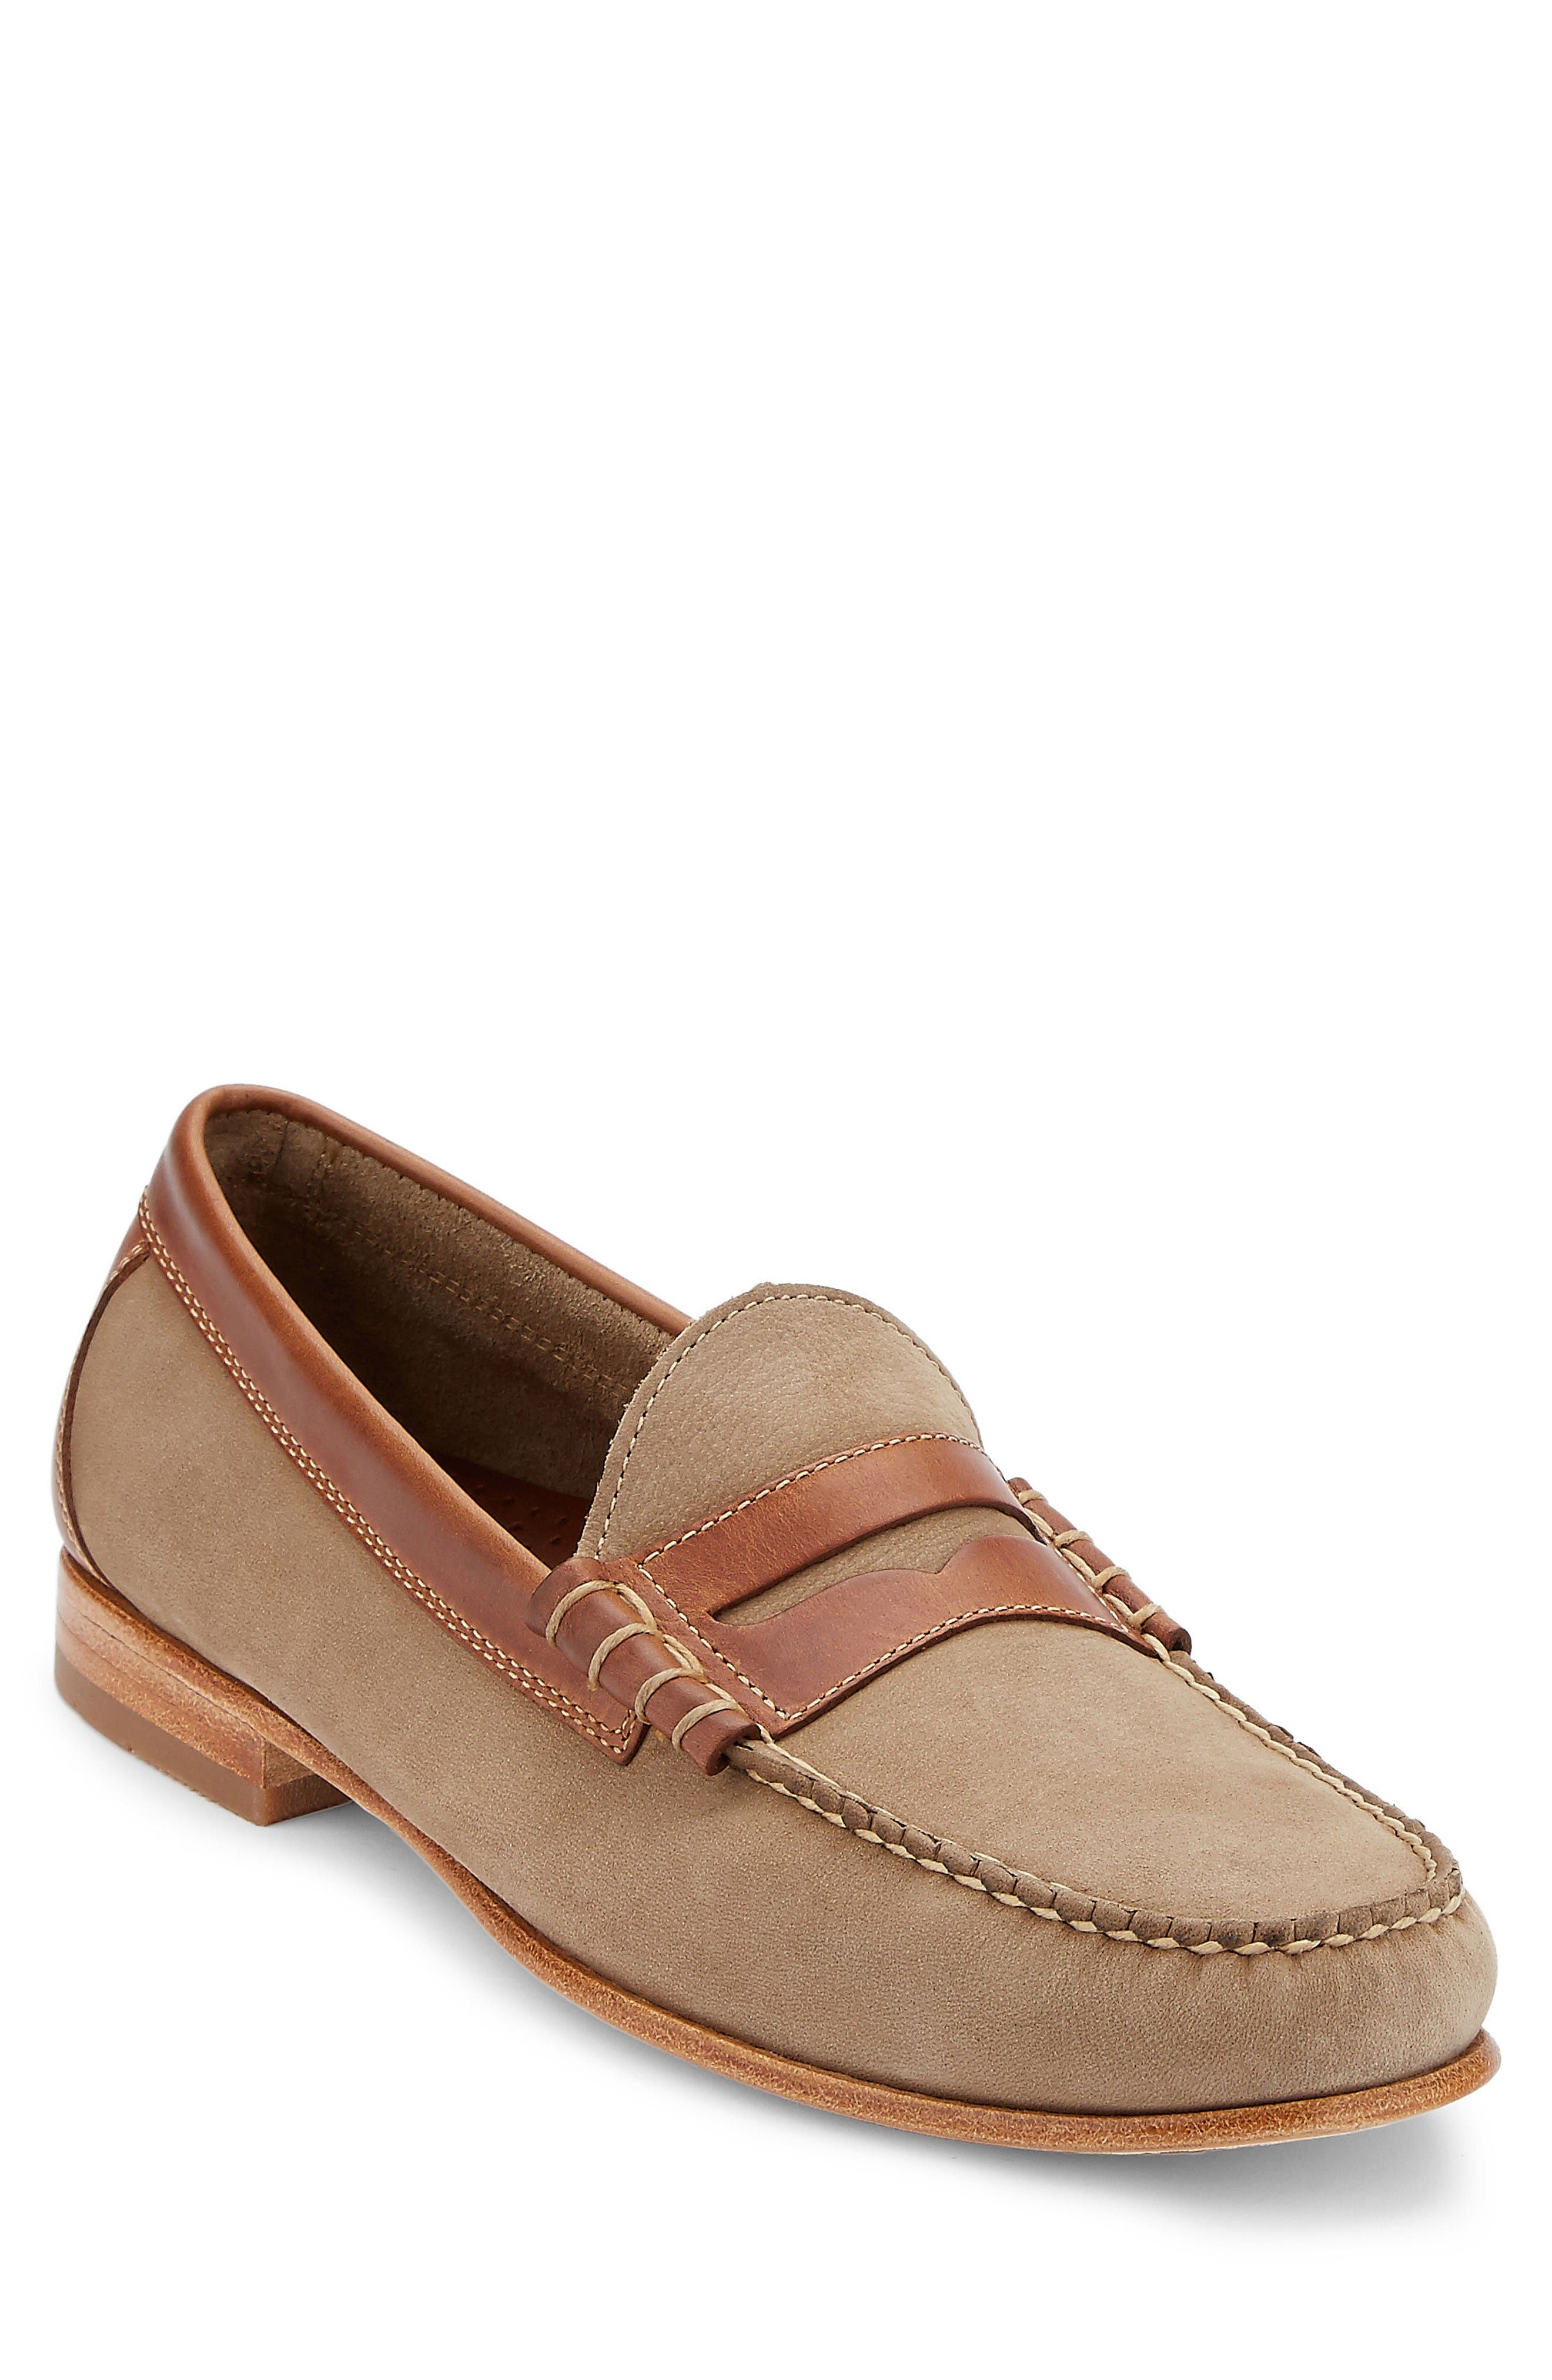 Main Image - G.H. Bass & Co. Weejuns Lambert Penny Loafer (Men)